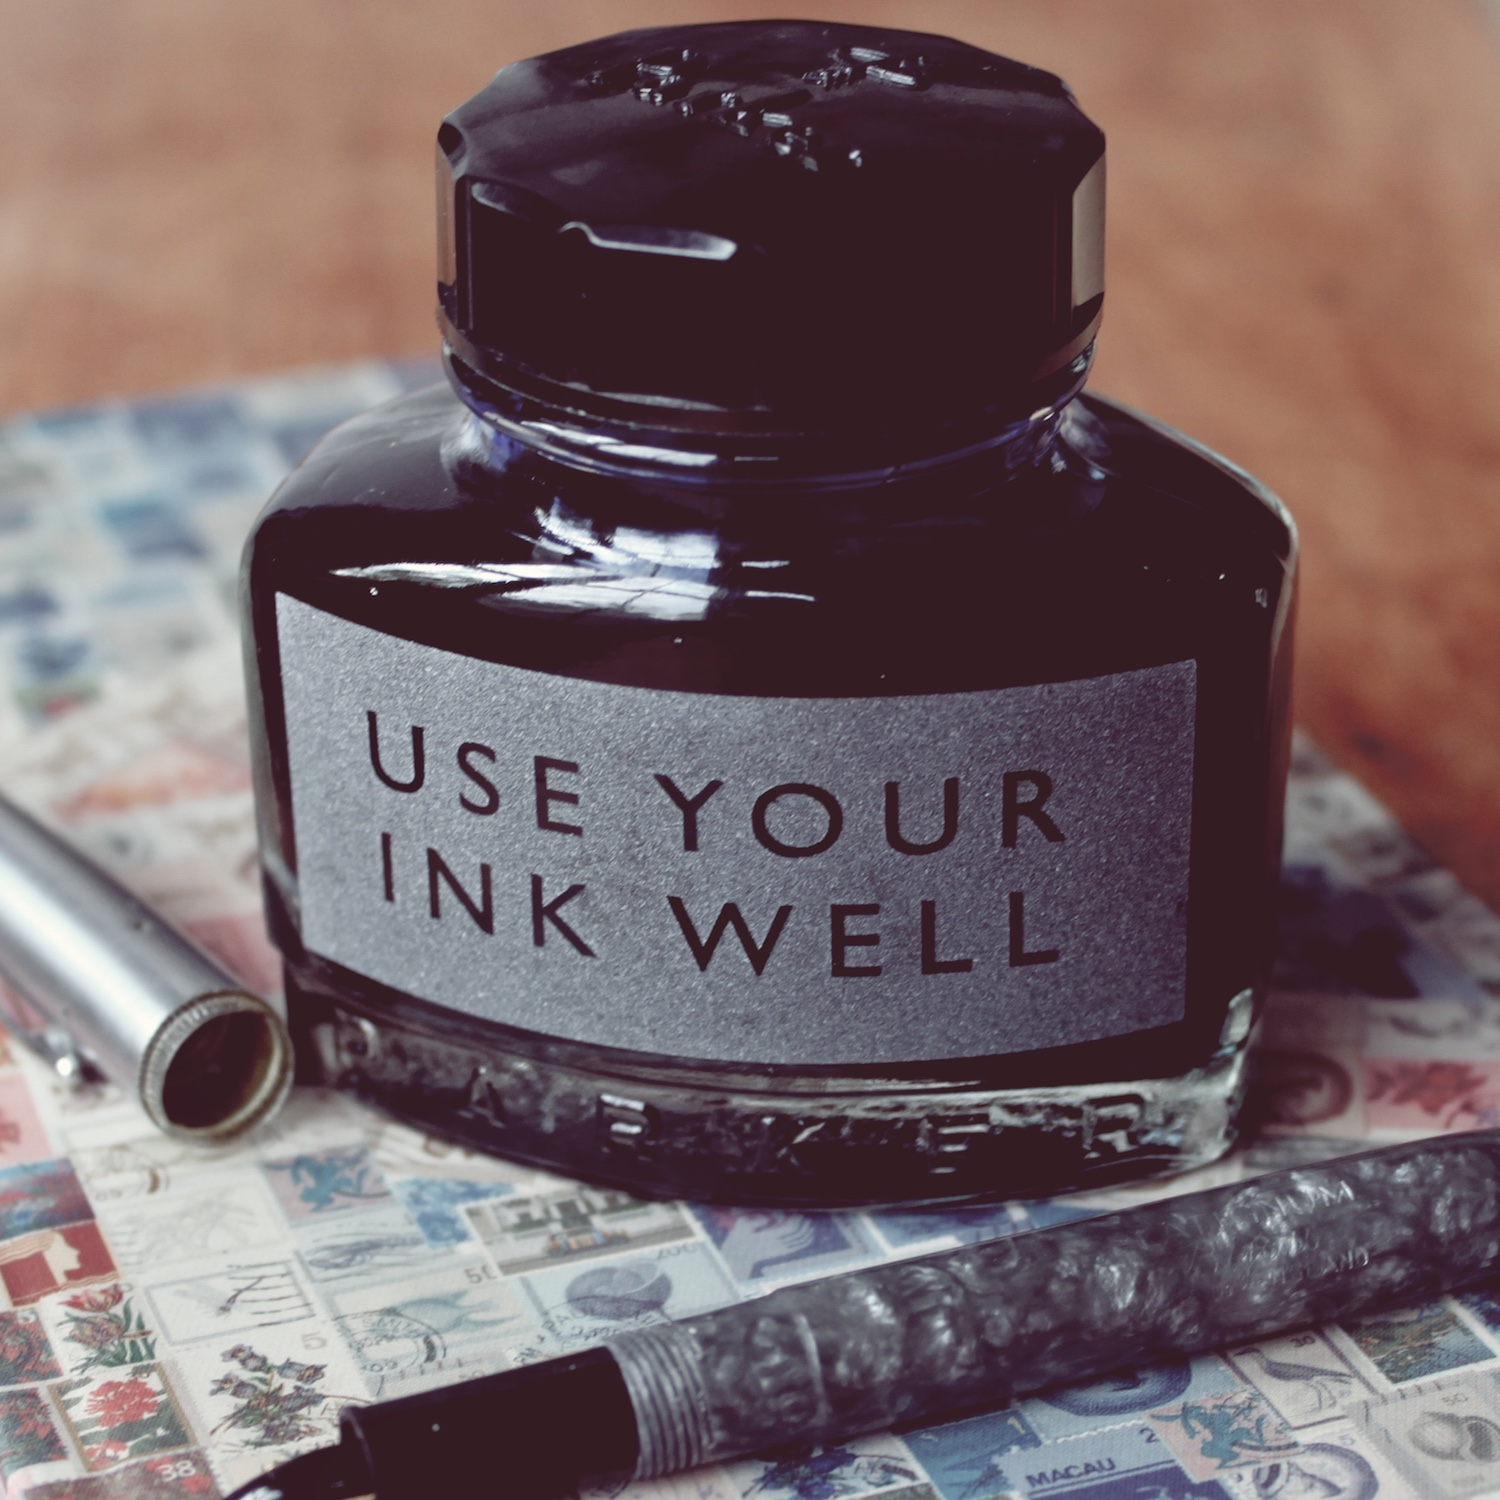 use-your-ink-well-etched-ink-bottle-vinegar-and-brown-paper.jpg